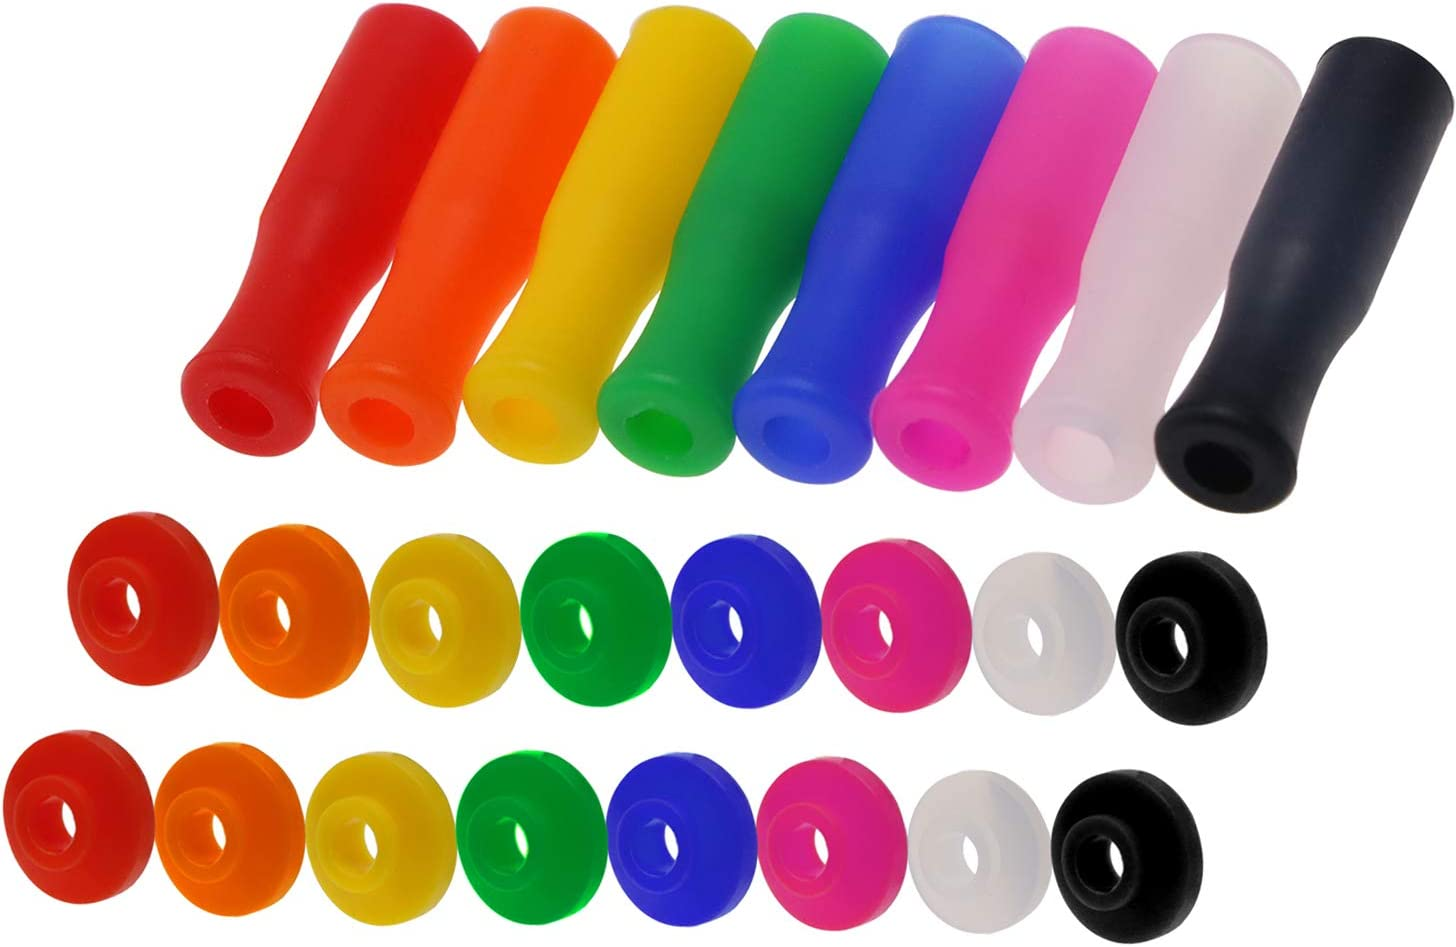 Mini Skater 8Pcs Multi Color Food Grade Silicone Straws Tips Covers and 16Pcs Straw Silencers Anti-Scald/Cold Straws Cover for 1/4 Inch Wide (6MM OD) Stainless Steel Straws,8 Colors